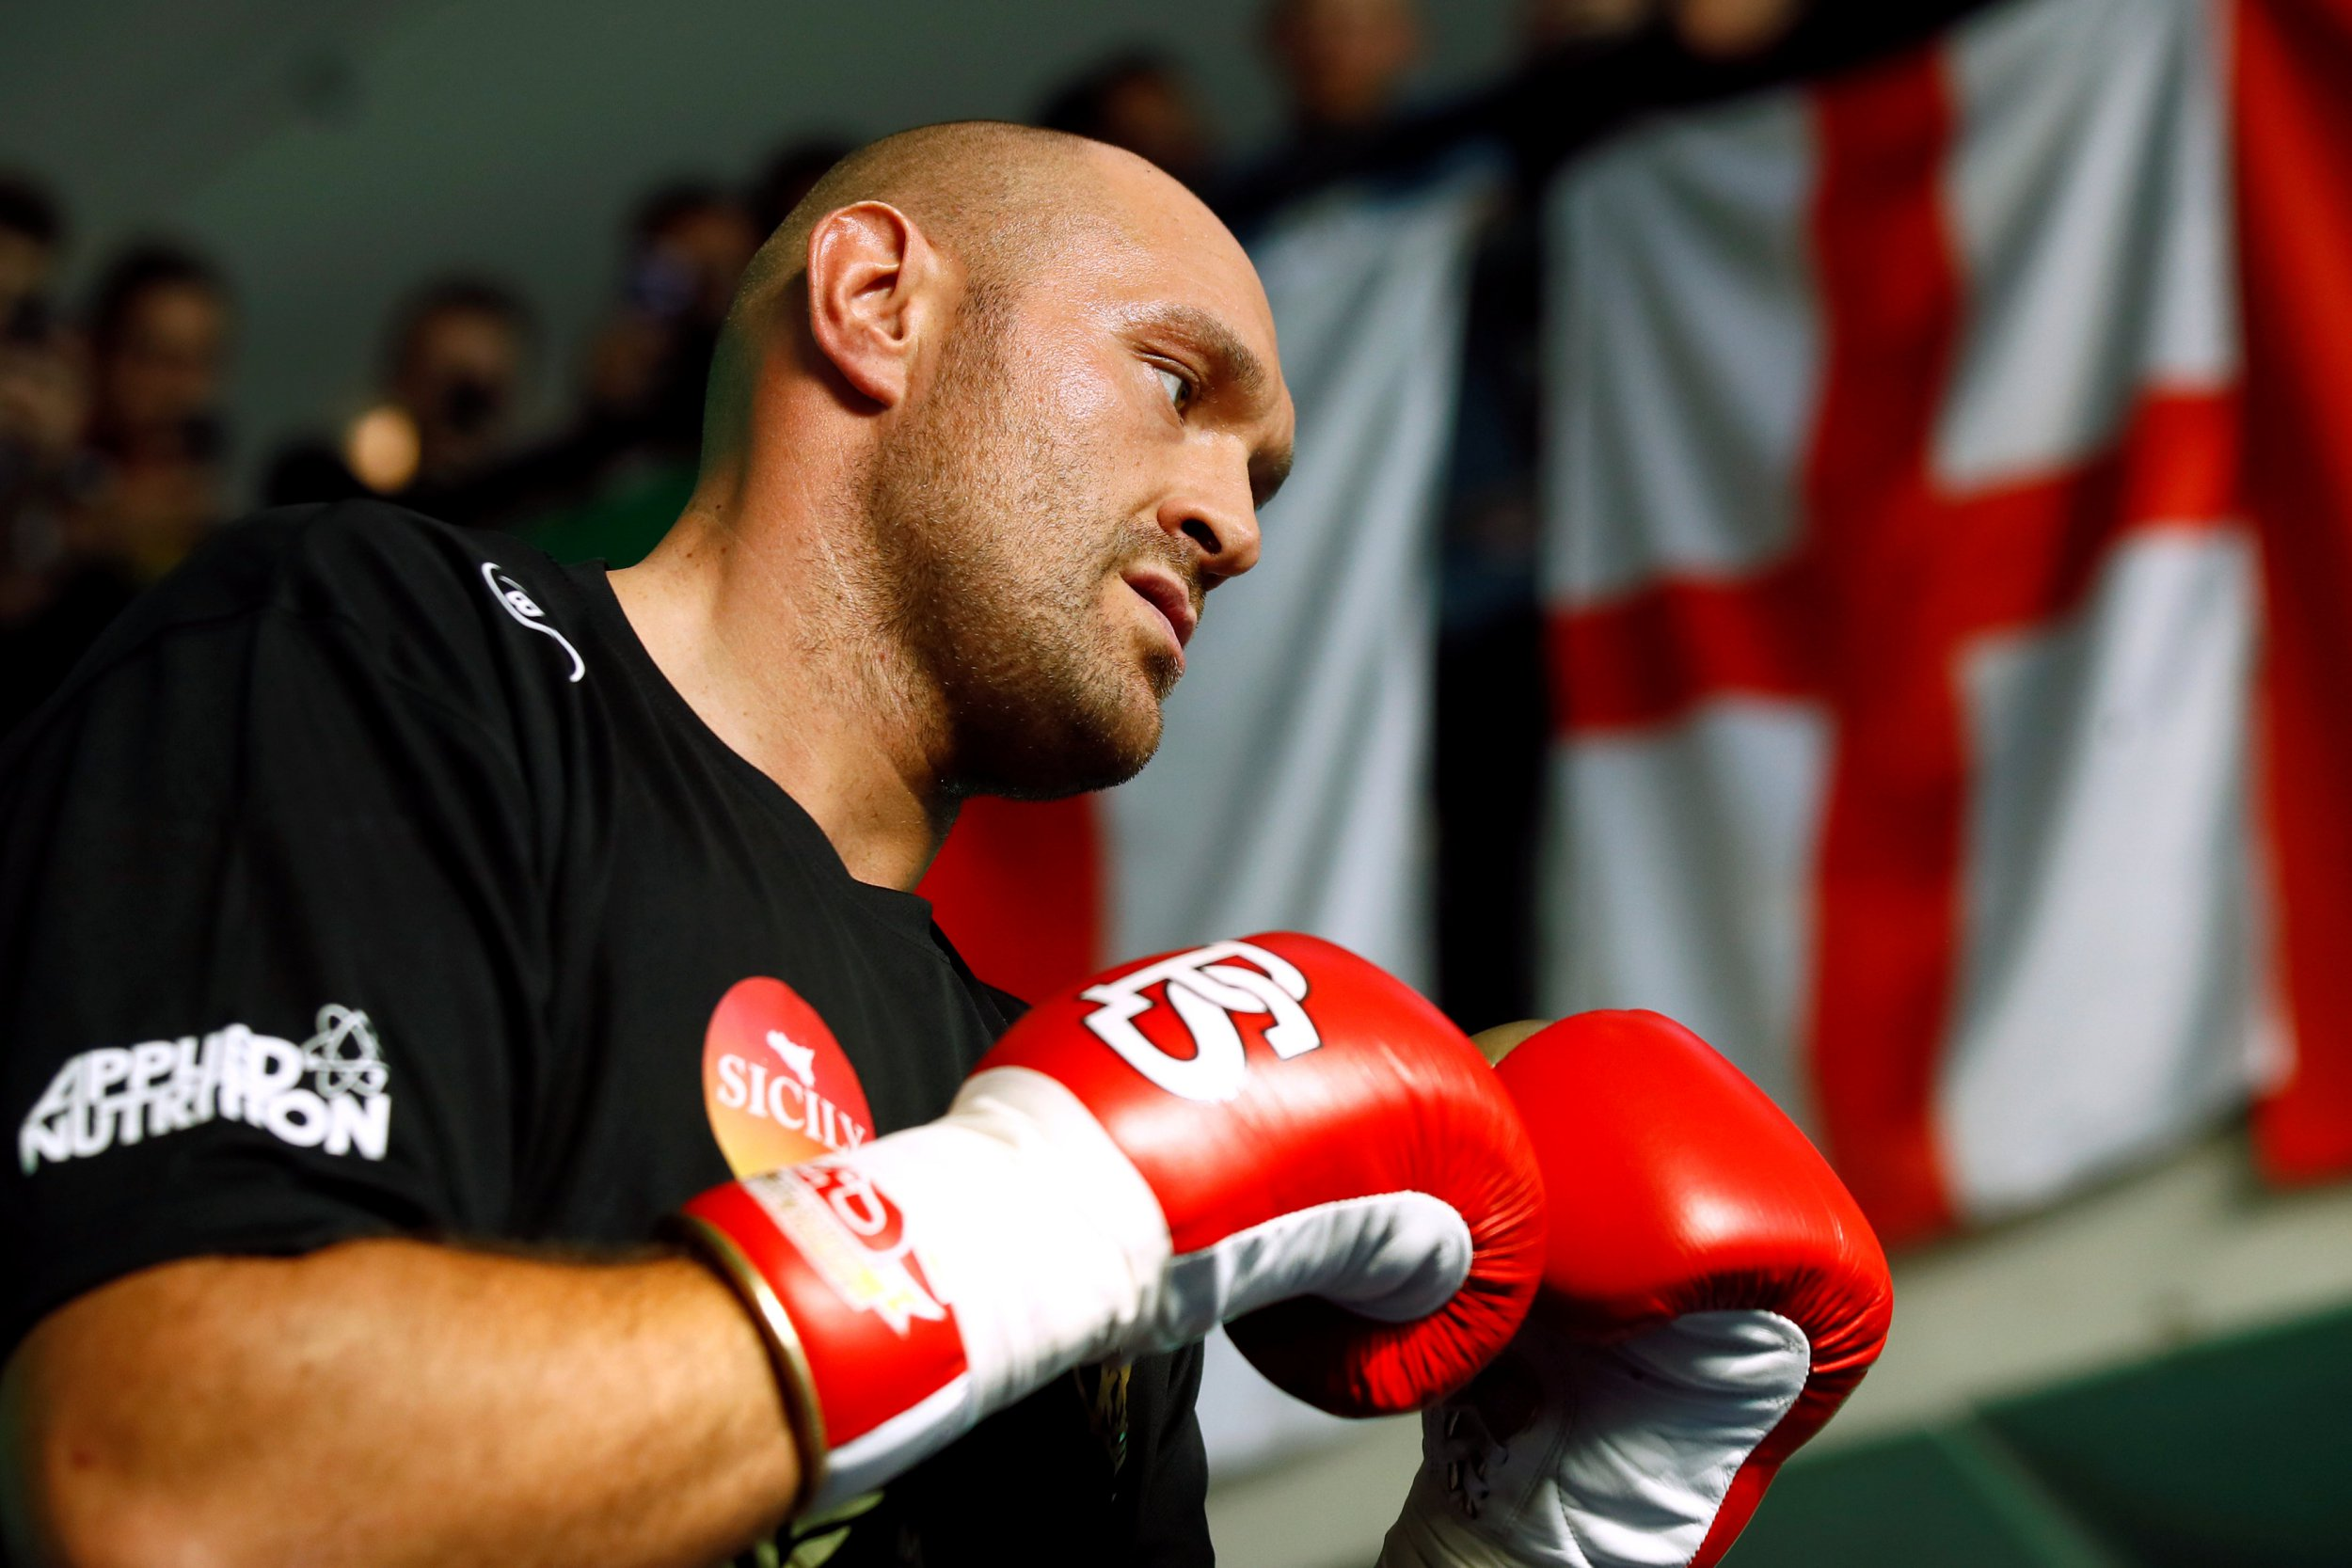 Boxing - Tyson Fury & Sefer Seferi public work-outs - National Football Museum, Manchester, Britain - June 5, 2018 Tyson Fury during his work-out Action Images via Reuters/Jason Cairnduff